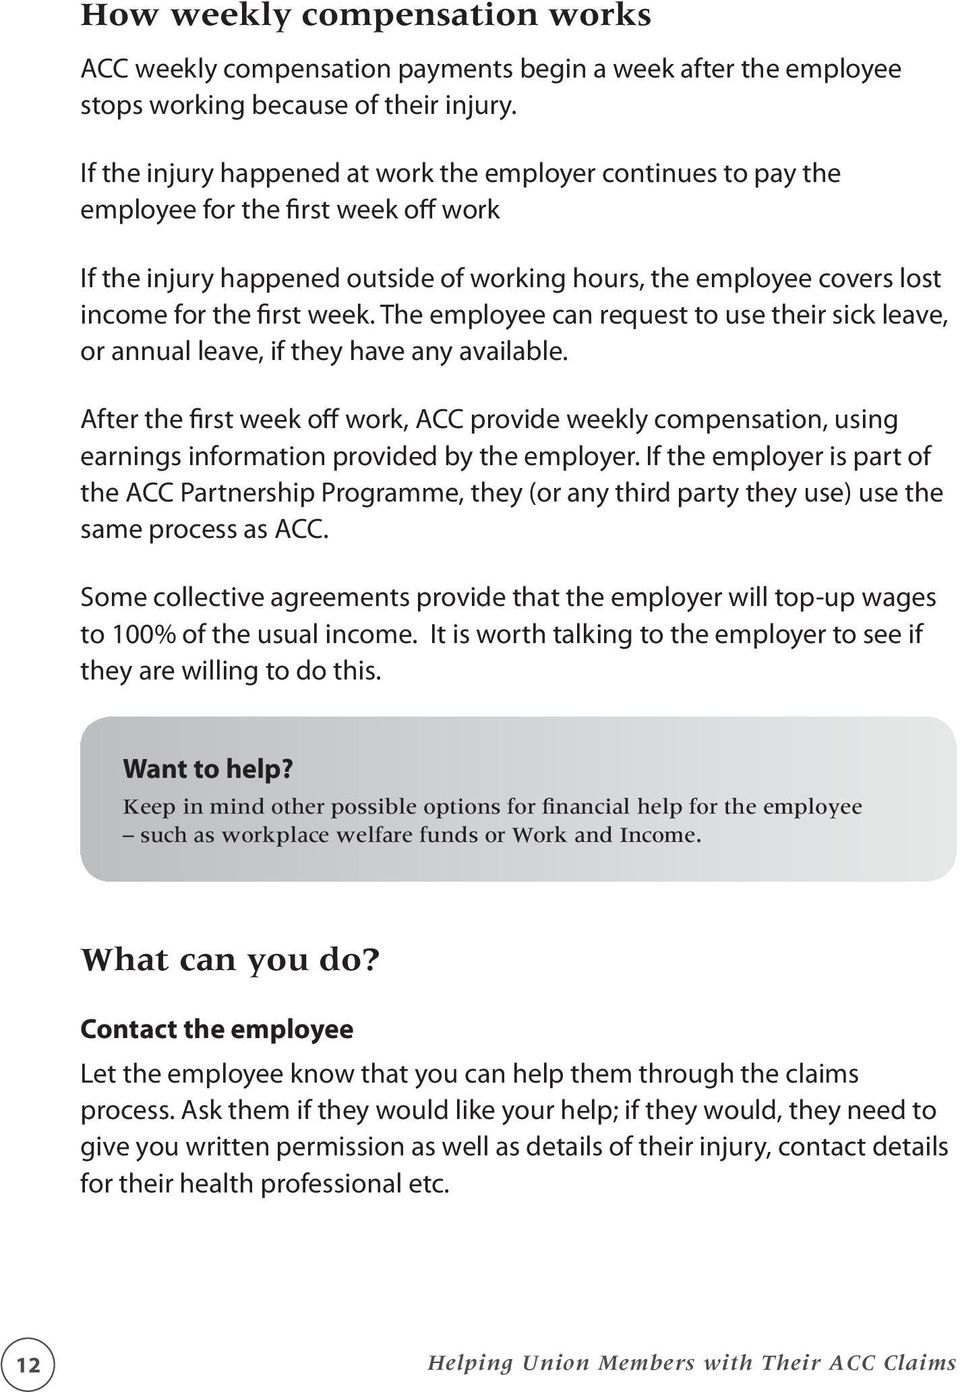 week. The employee can request to use their sick leave, or annual leave, if they have any available.